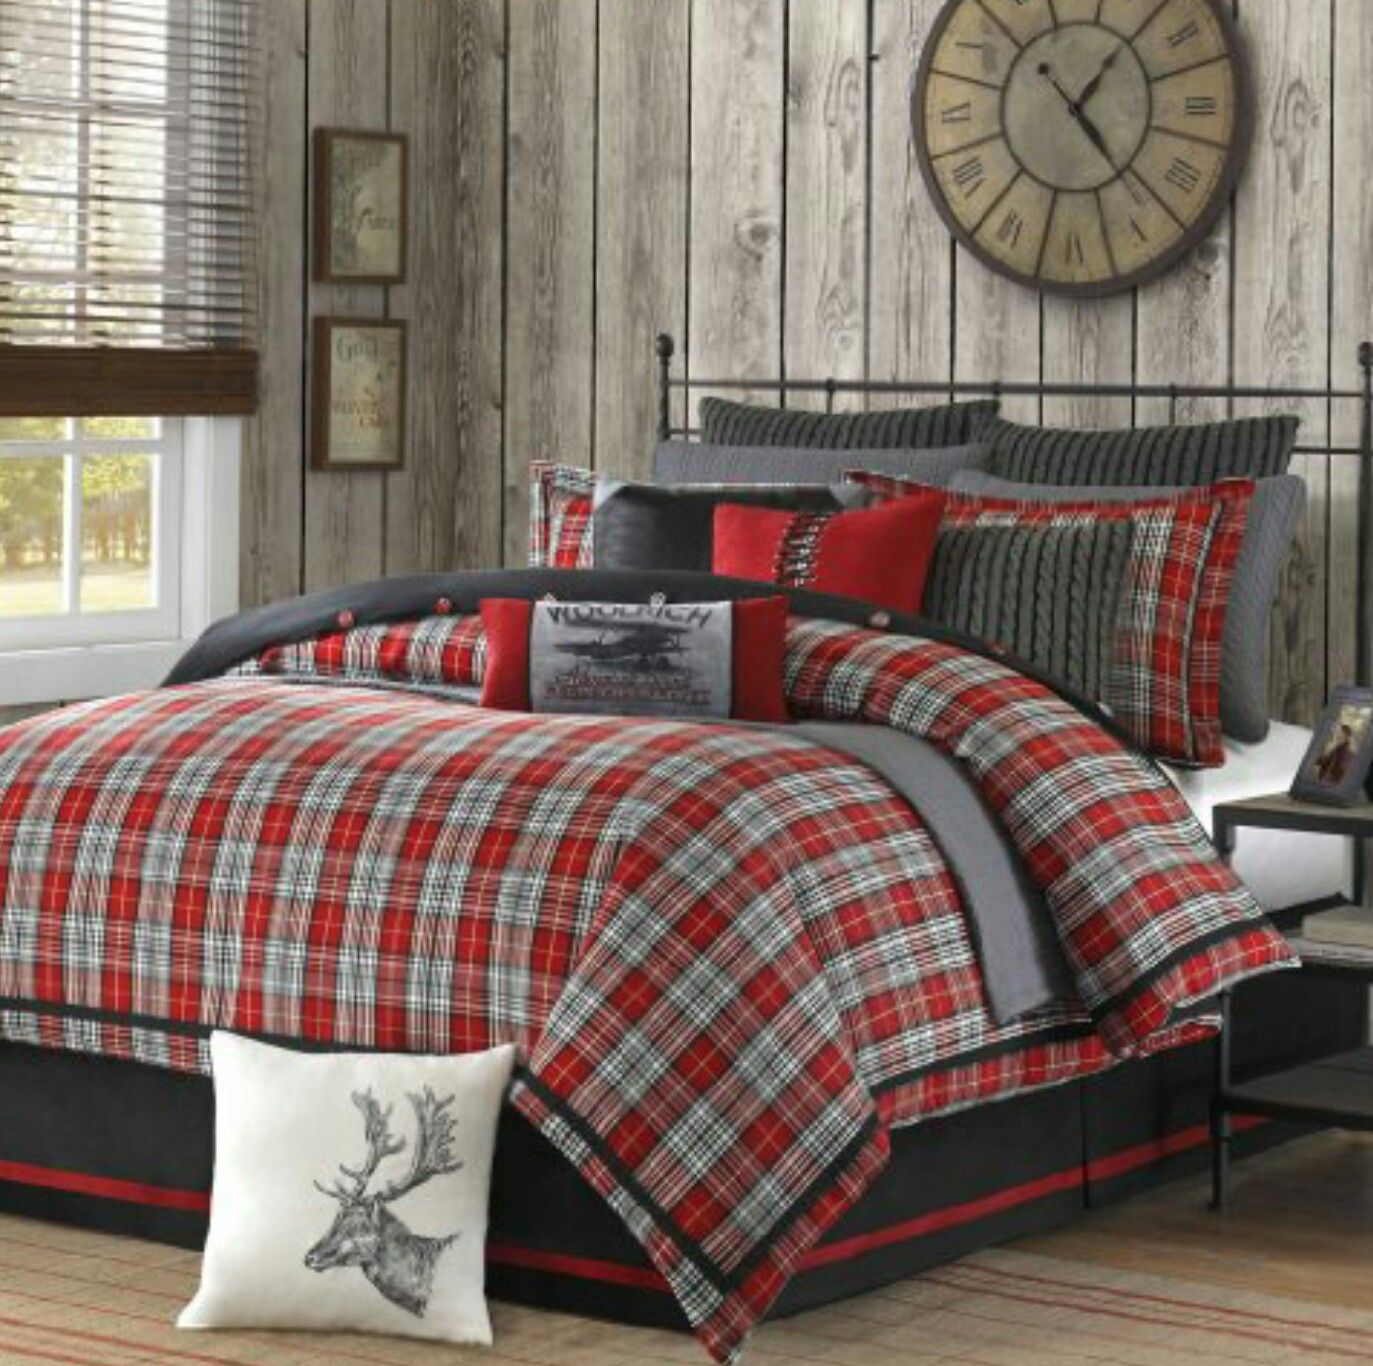 Idea by Jackie Howell on Bedding Ideas For Men Lodge